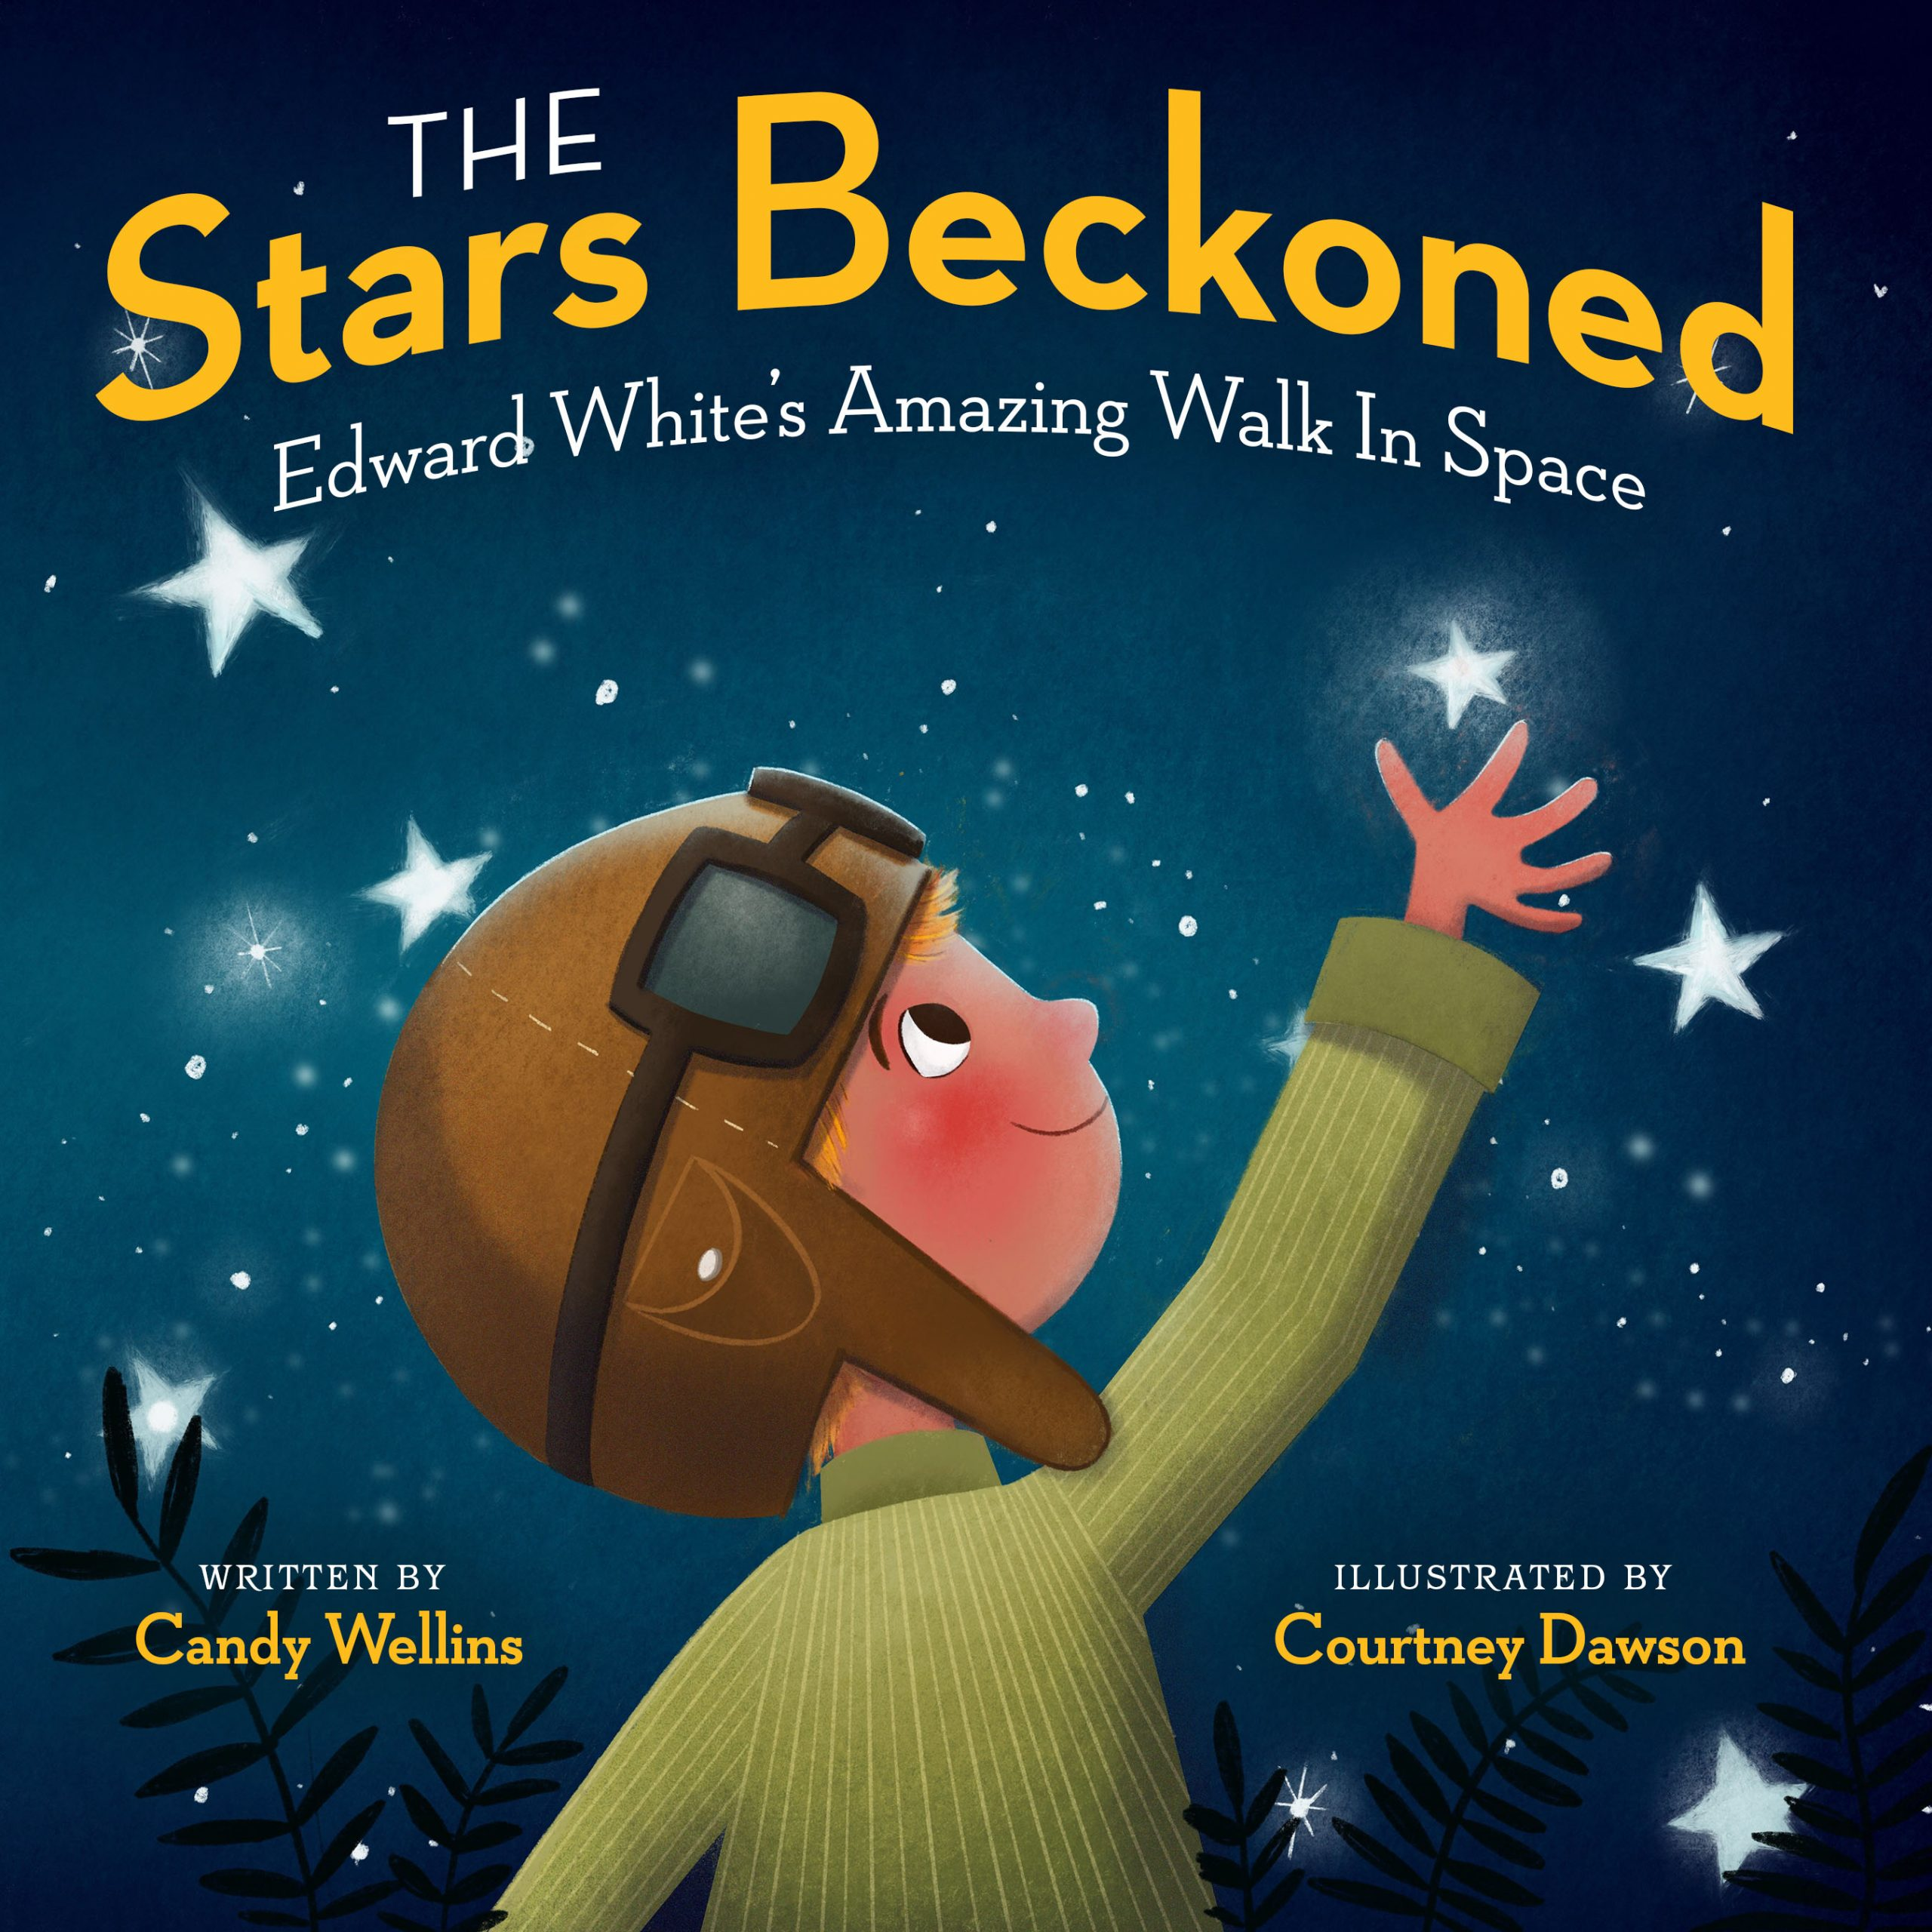 An Interview With The Stars Beckoned Author Candy Wellins